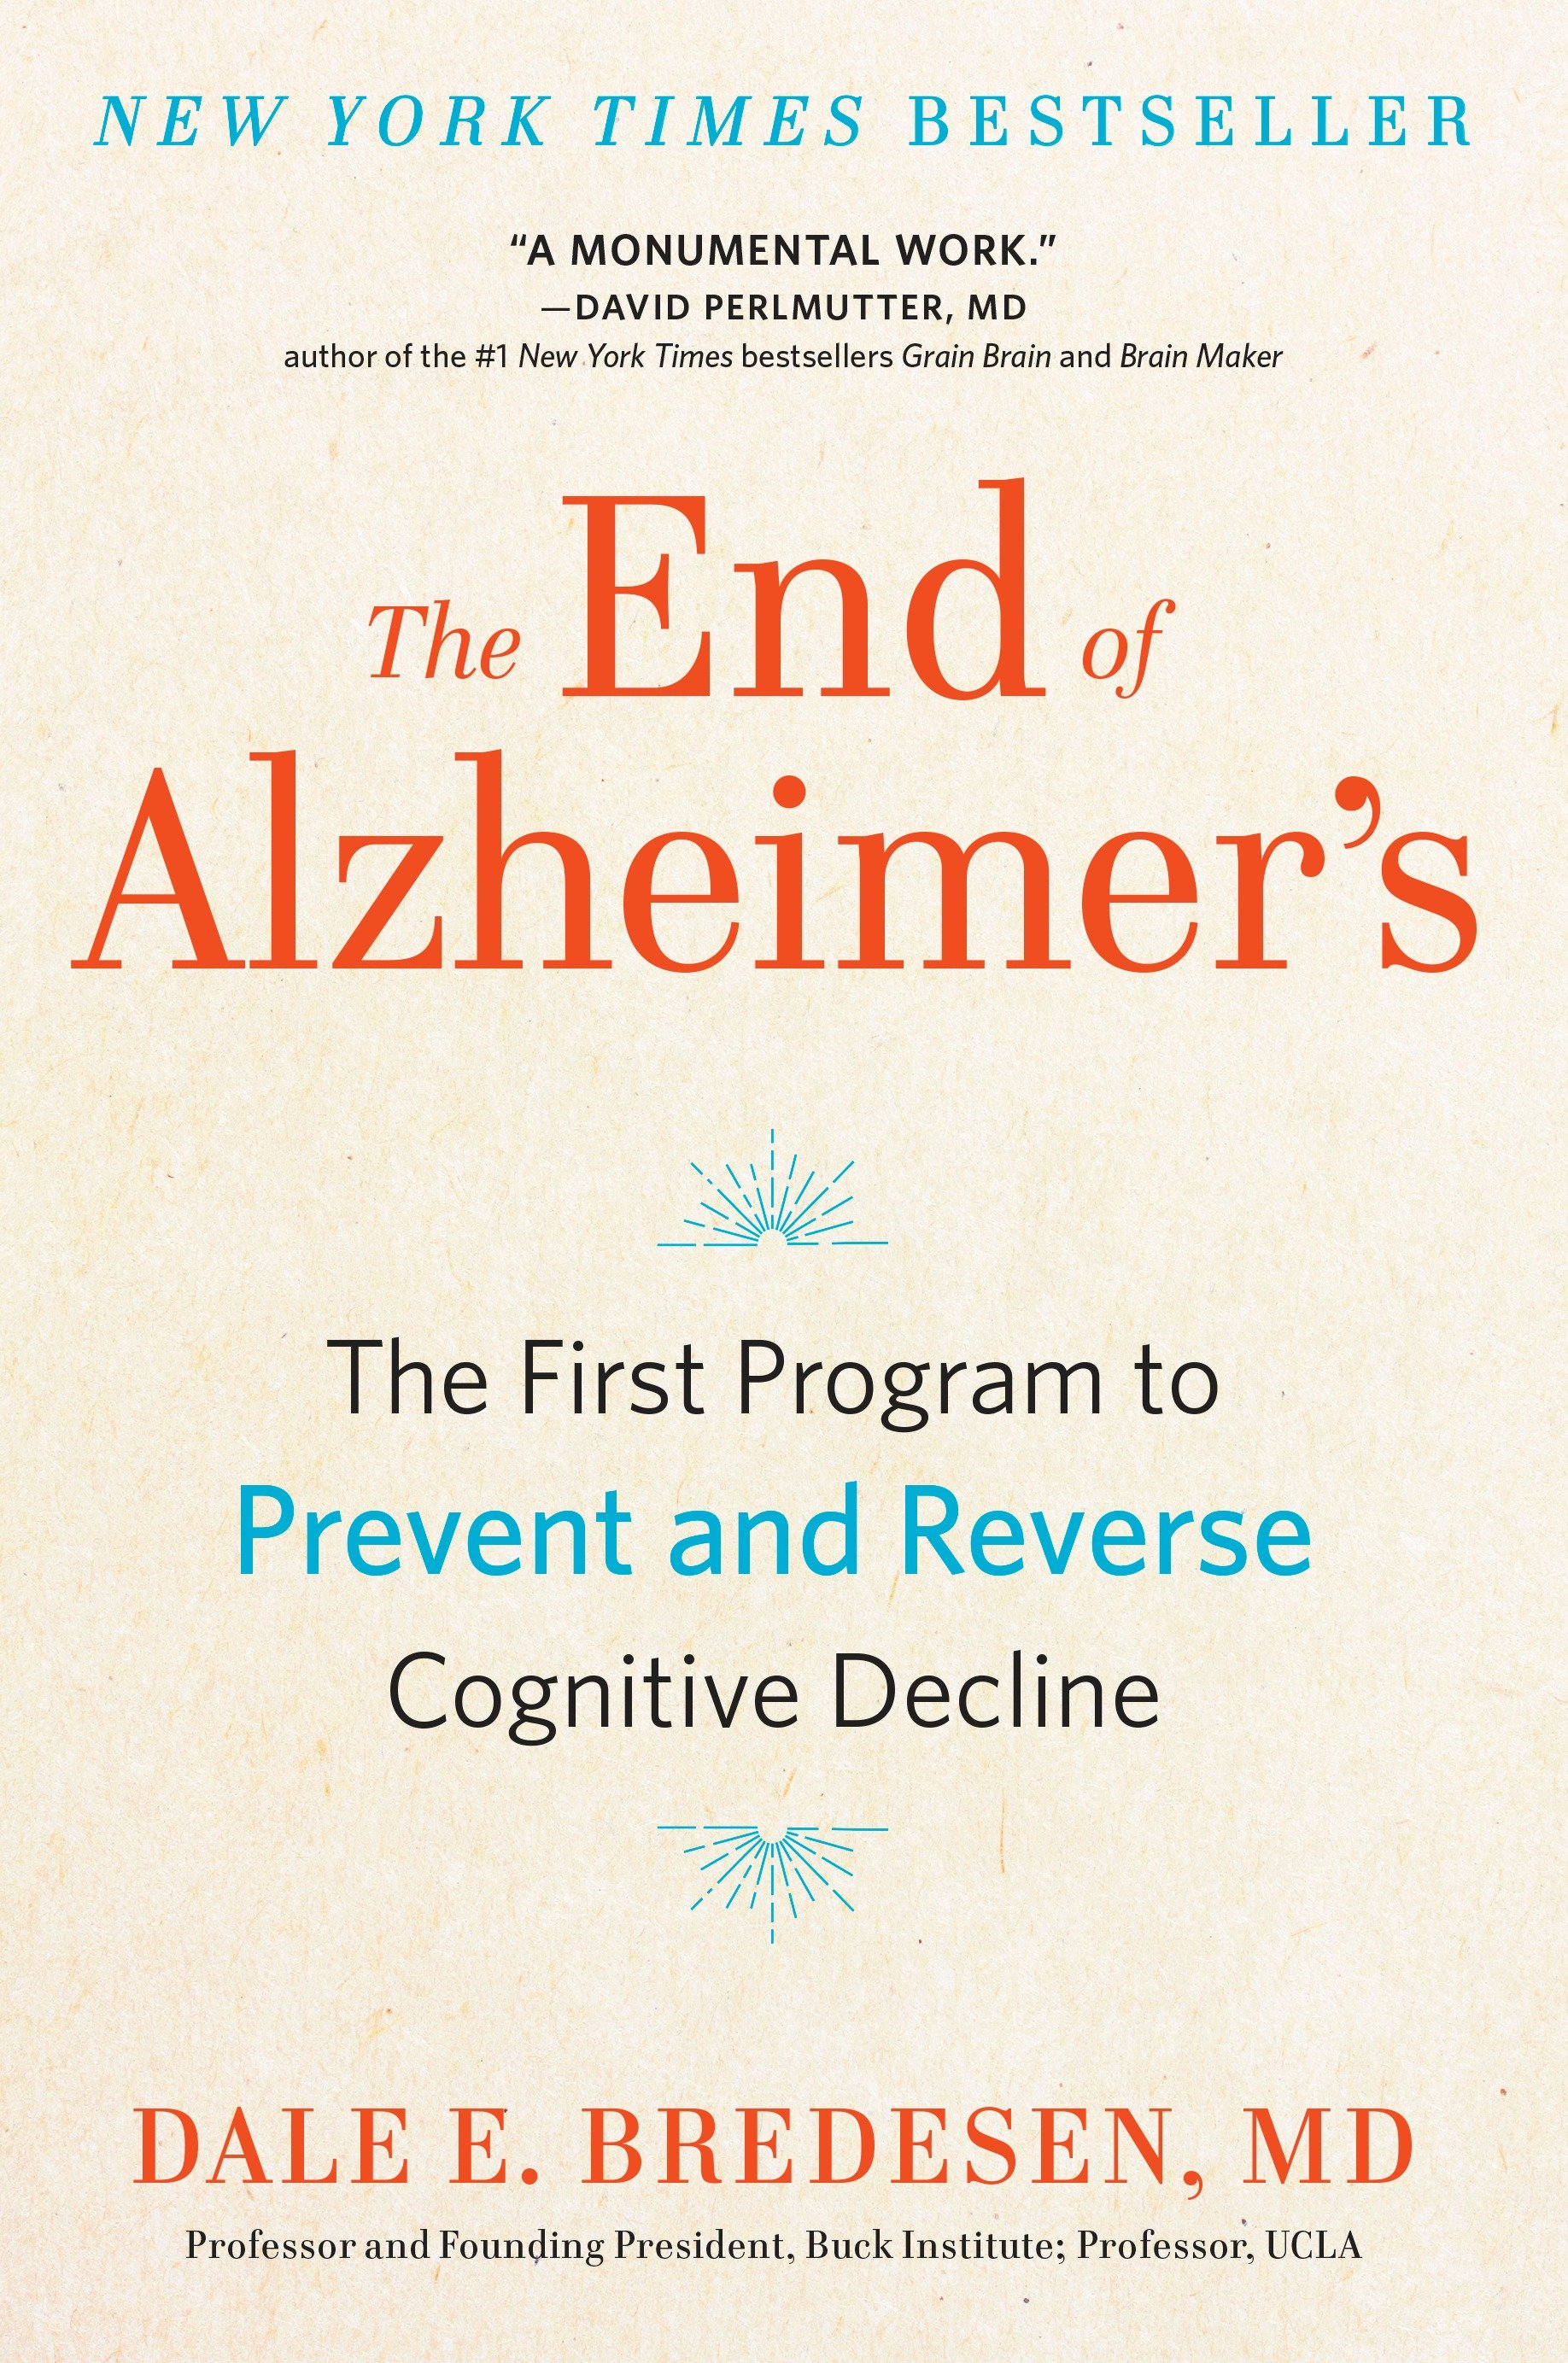 The End of Alzheimer's The First Program to Prevent and Reverse Cognitive Decline